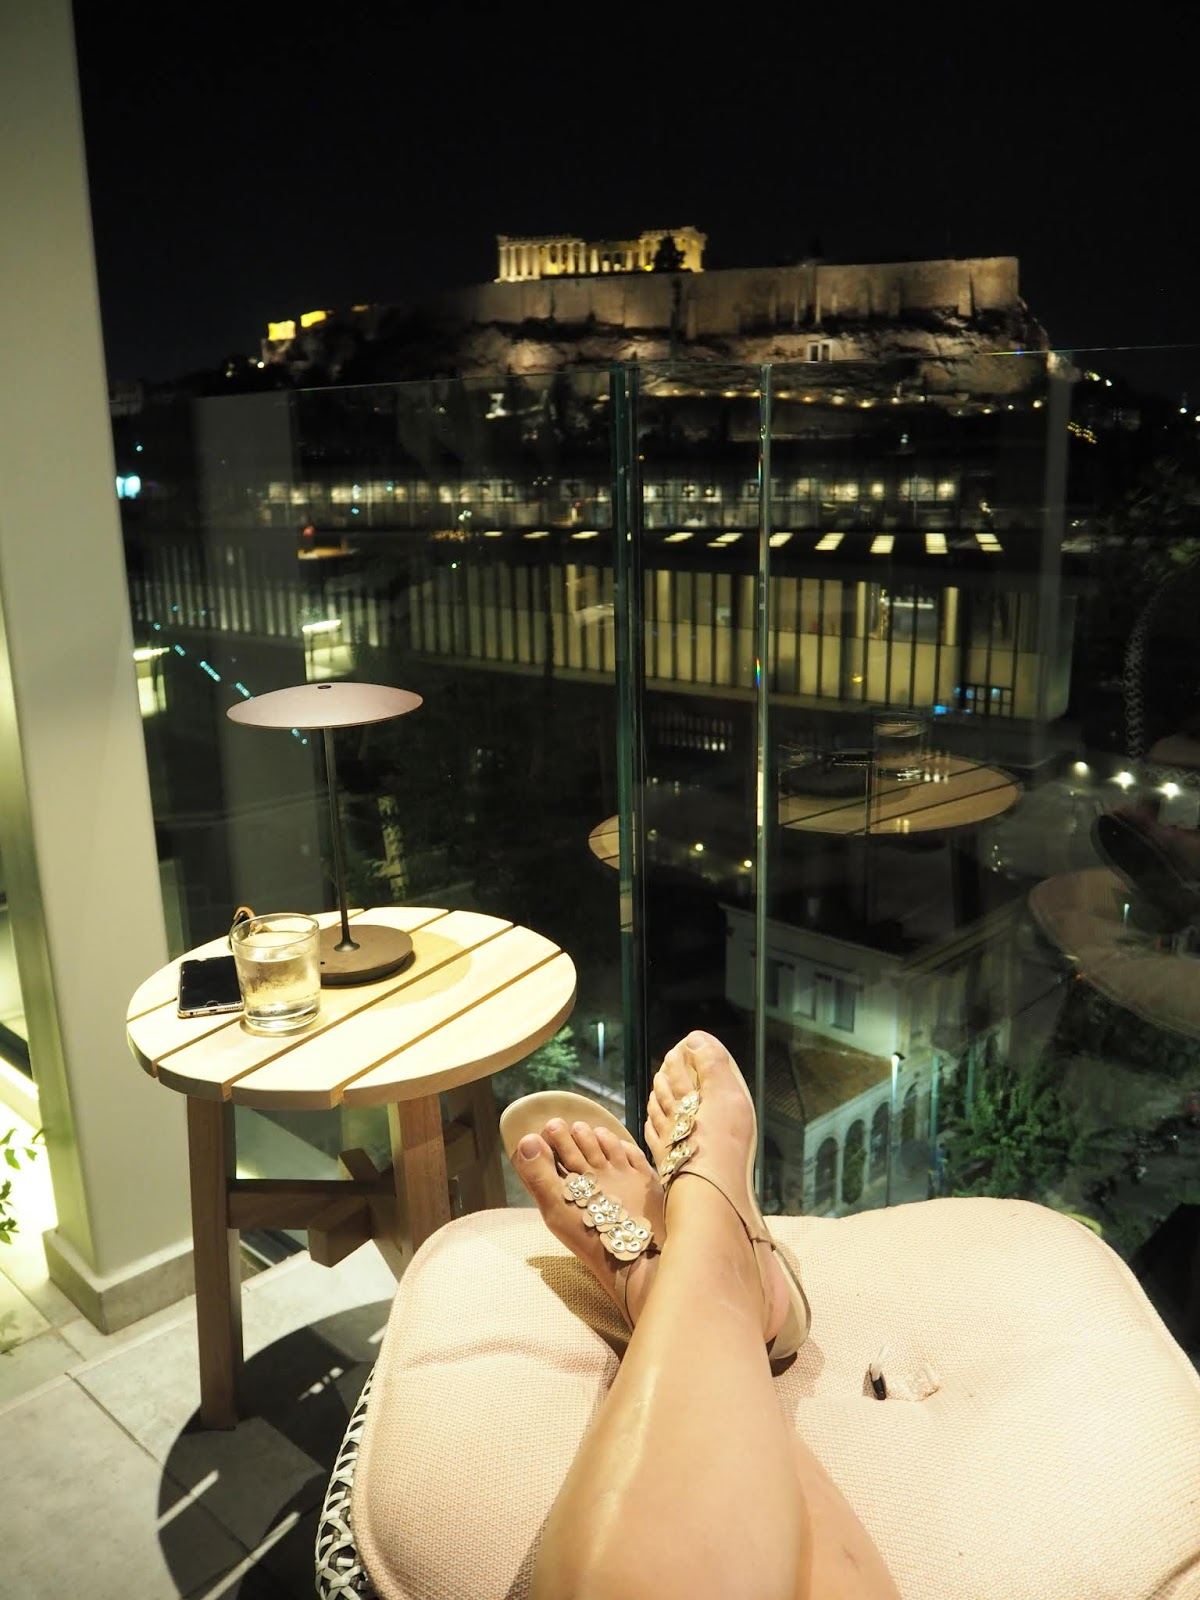 Prime spot coco mat athens bc hotel rooftop bar